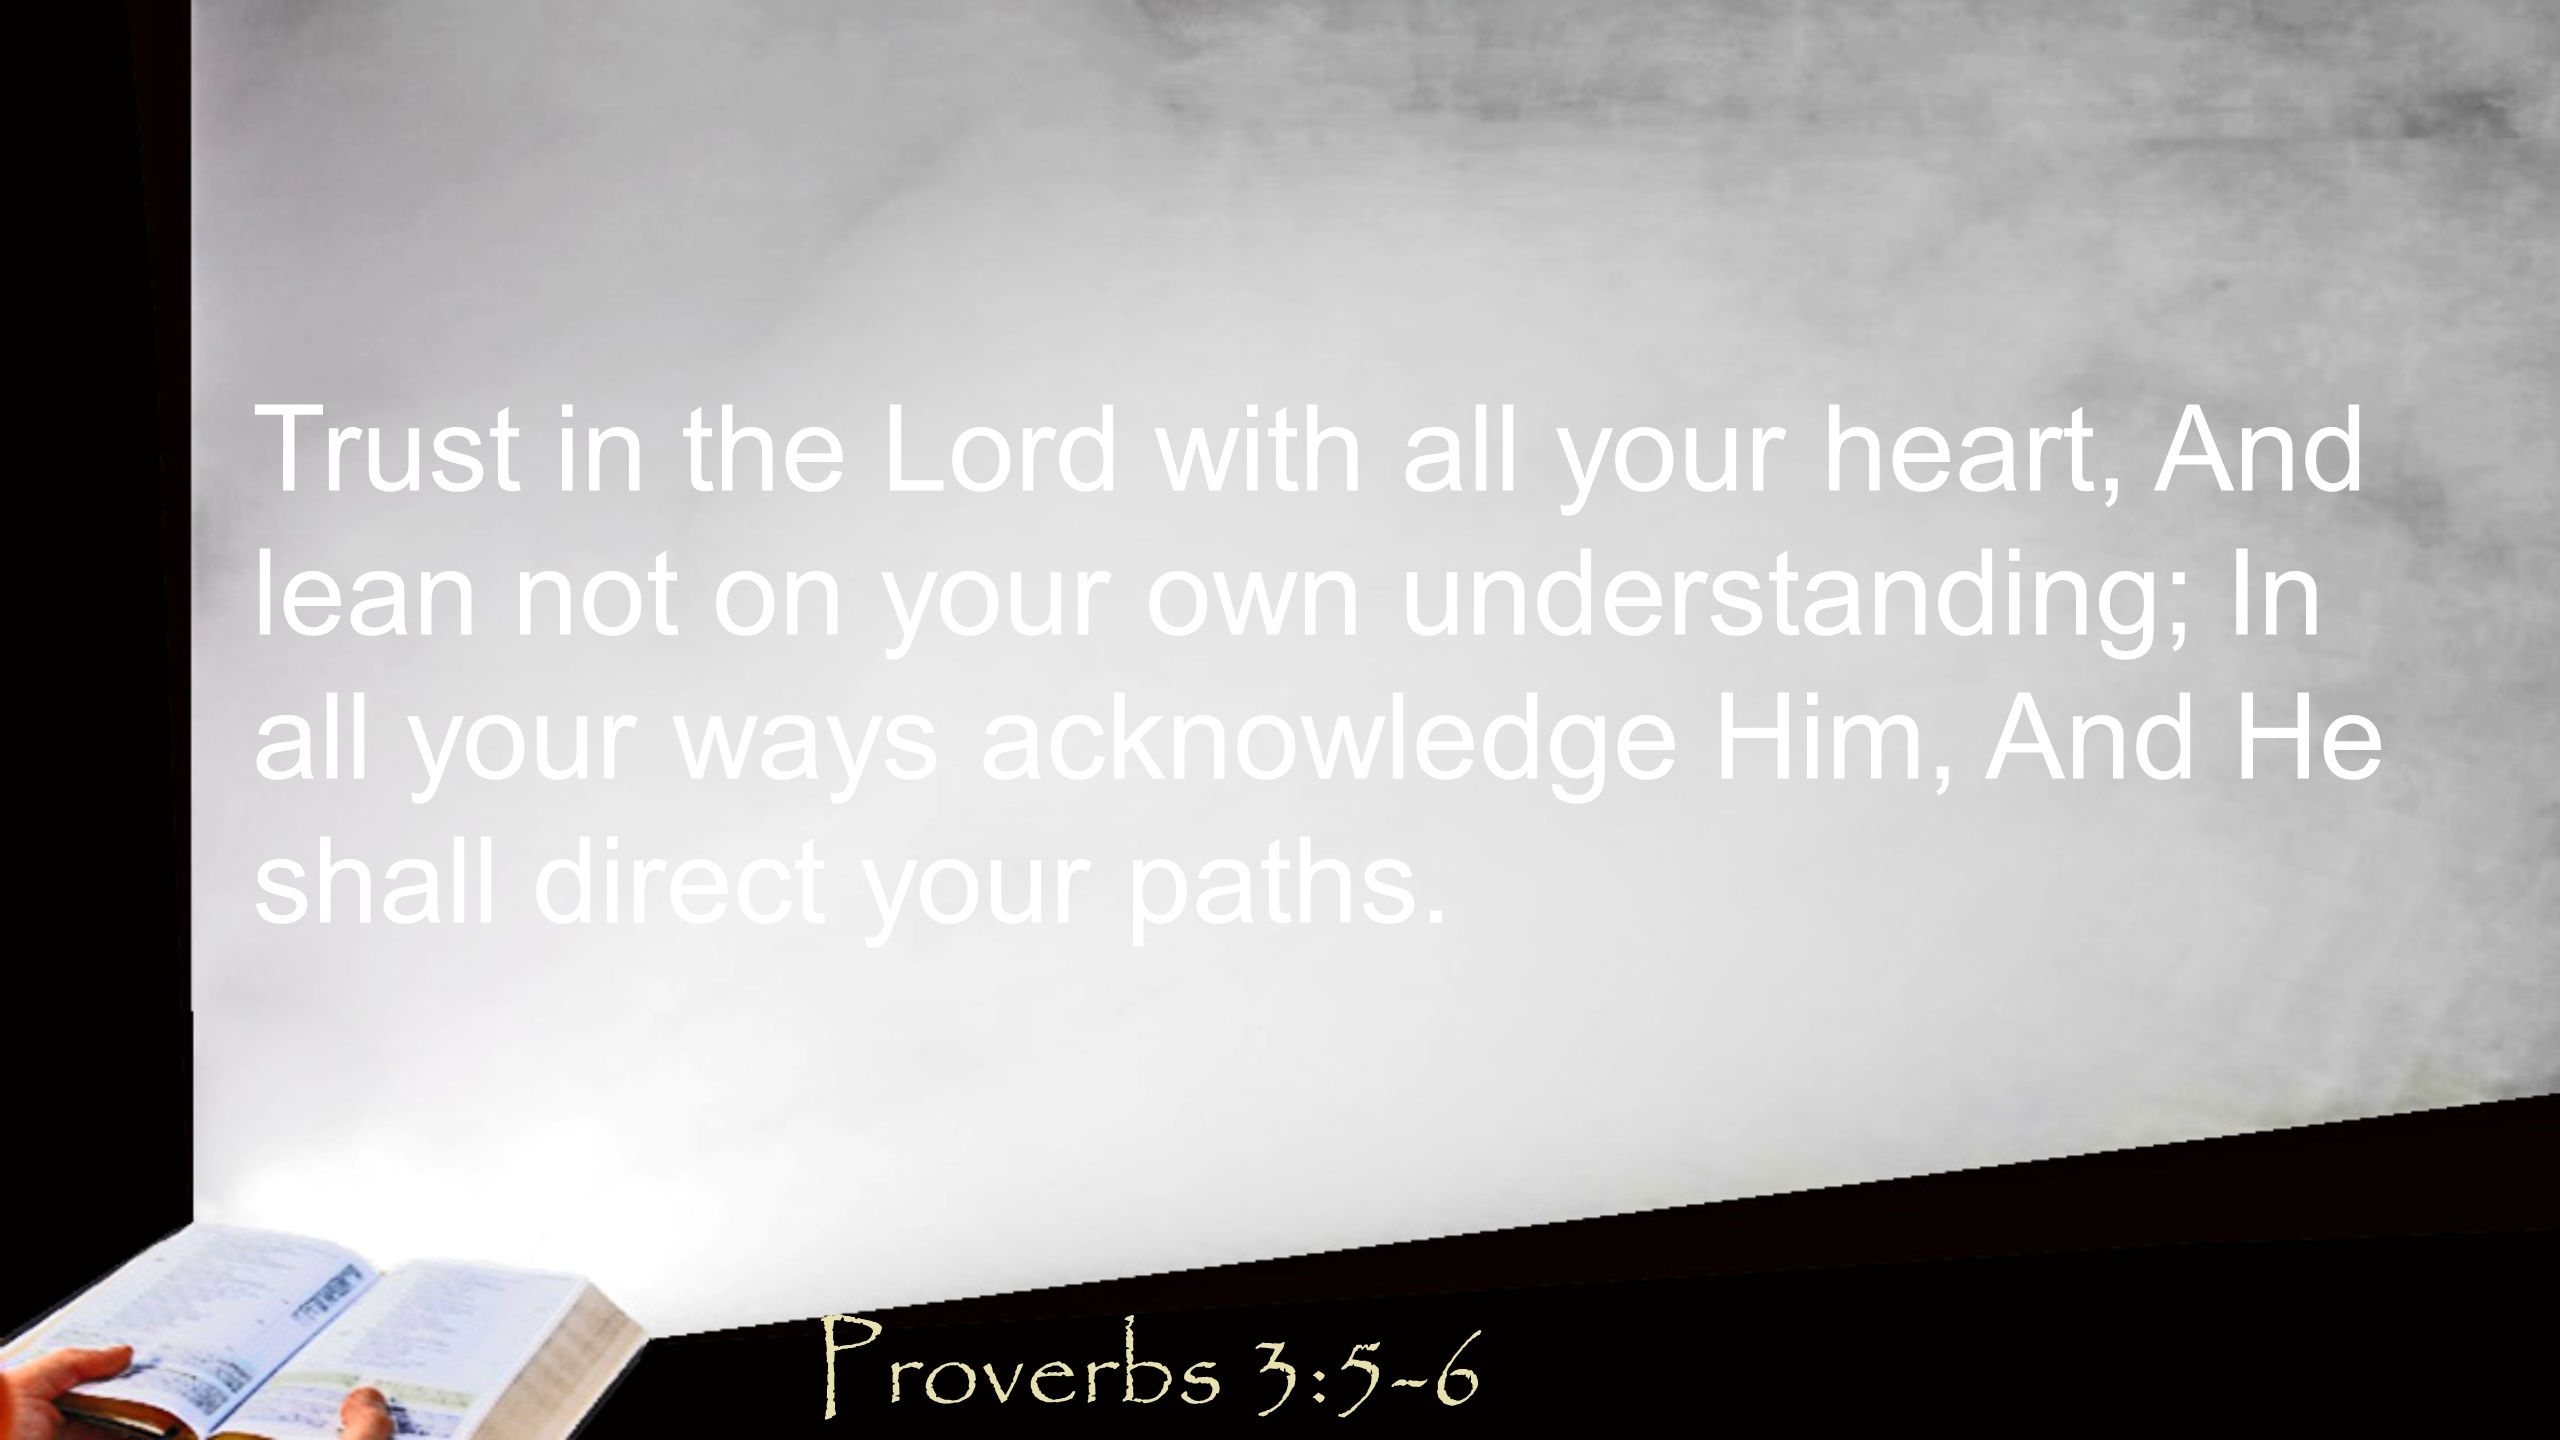 Trust in the Lord with all your heart, And lean not on your own understanding; In all your ways acknowledge Him, And He shall direct your paths.